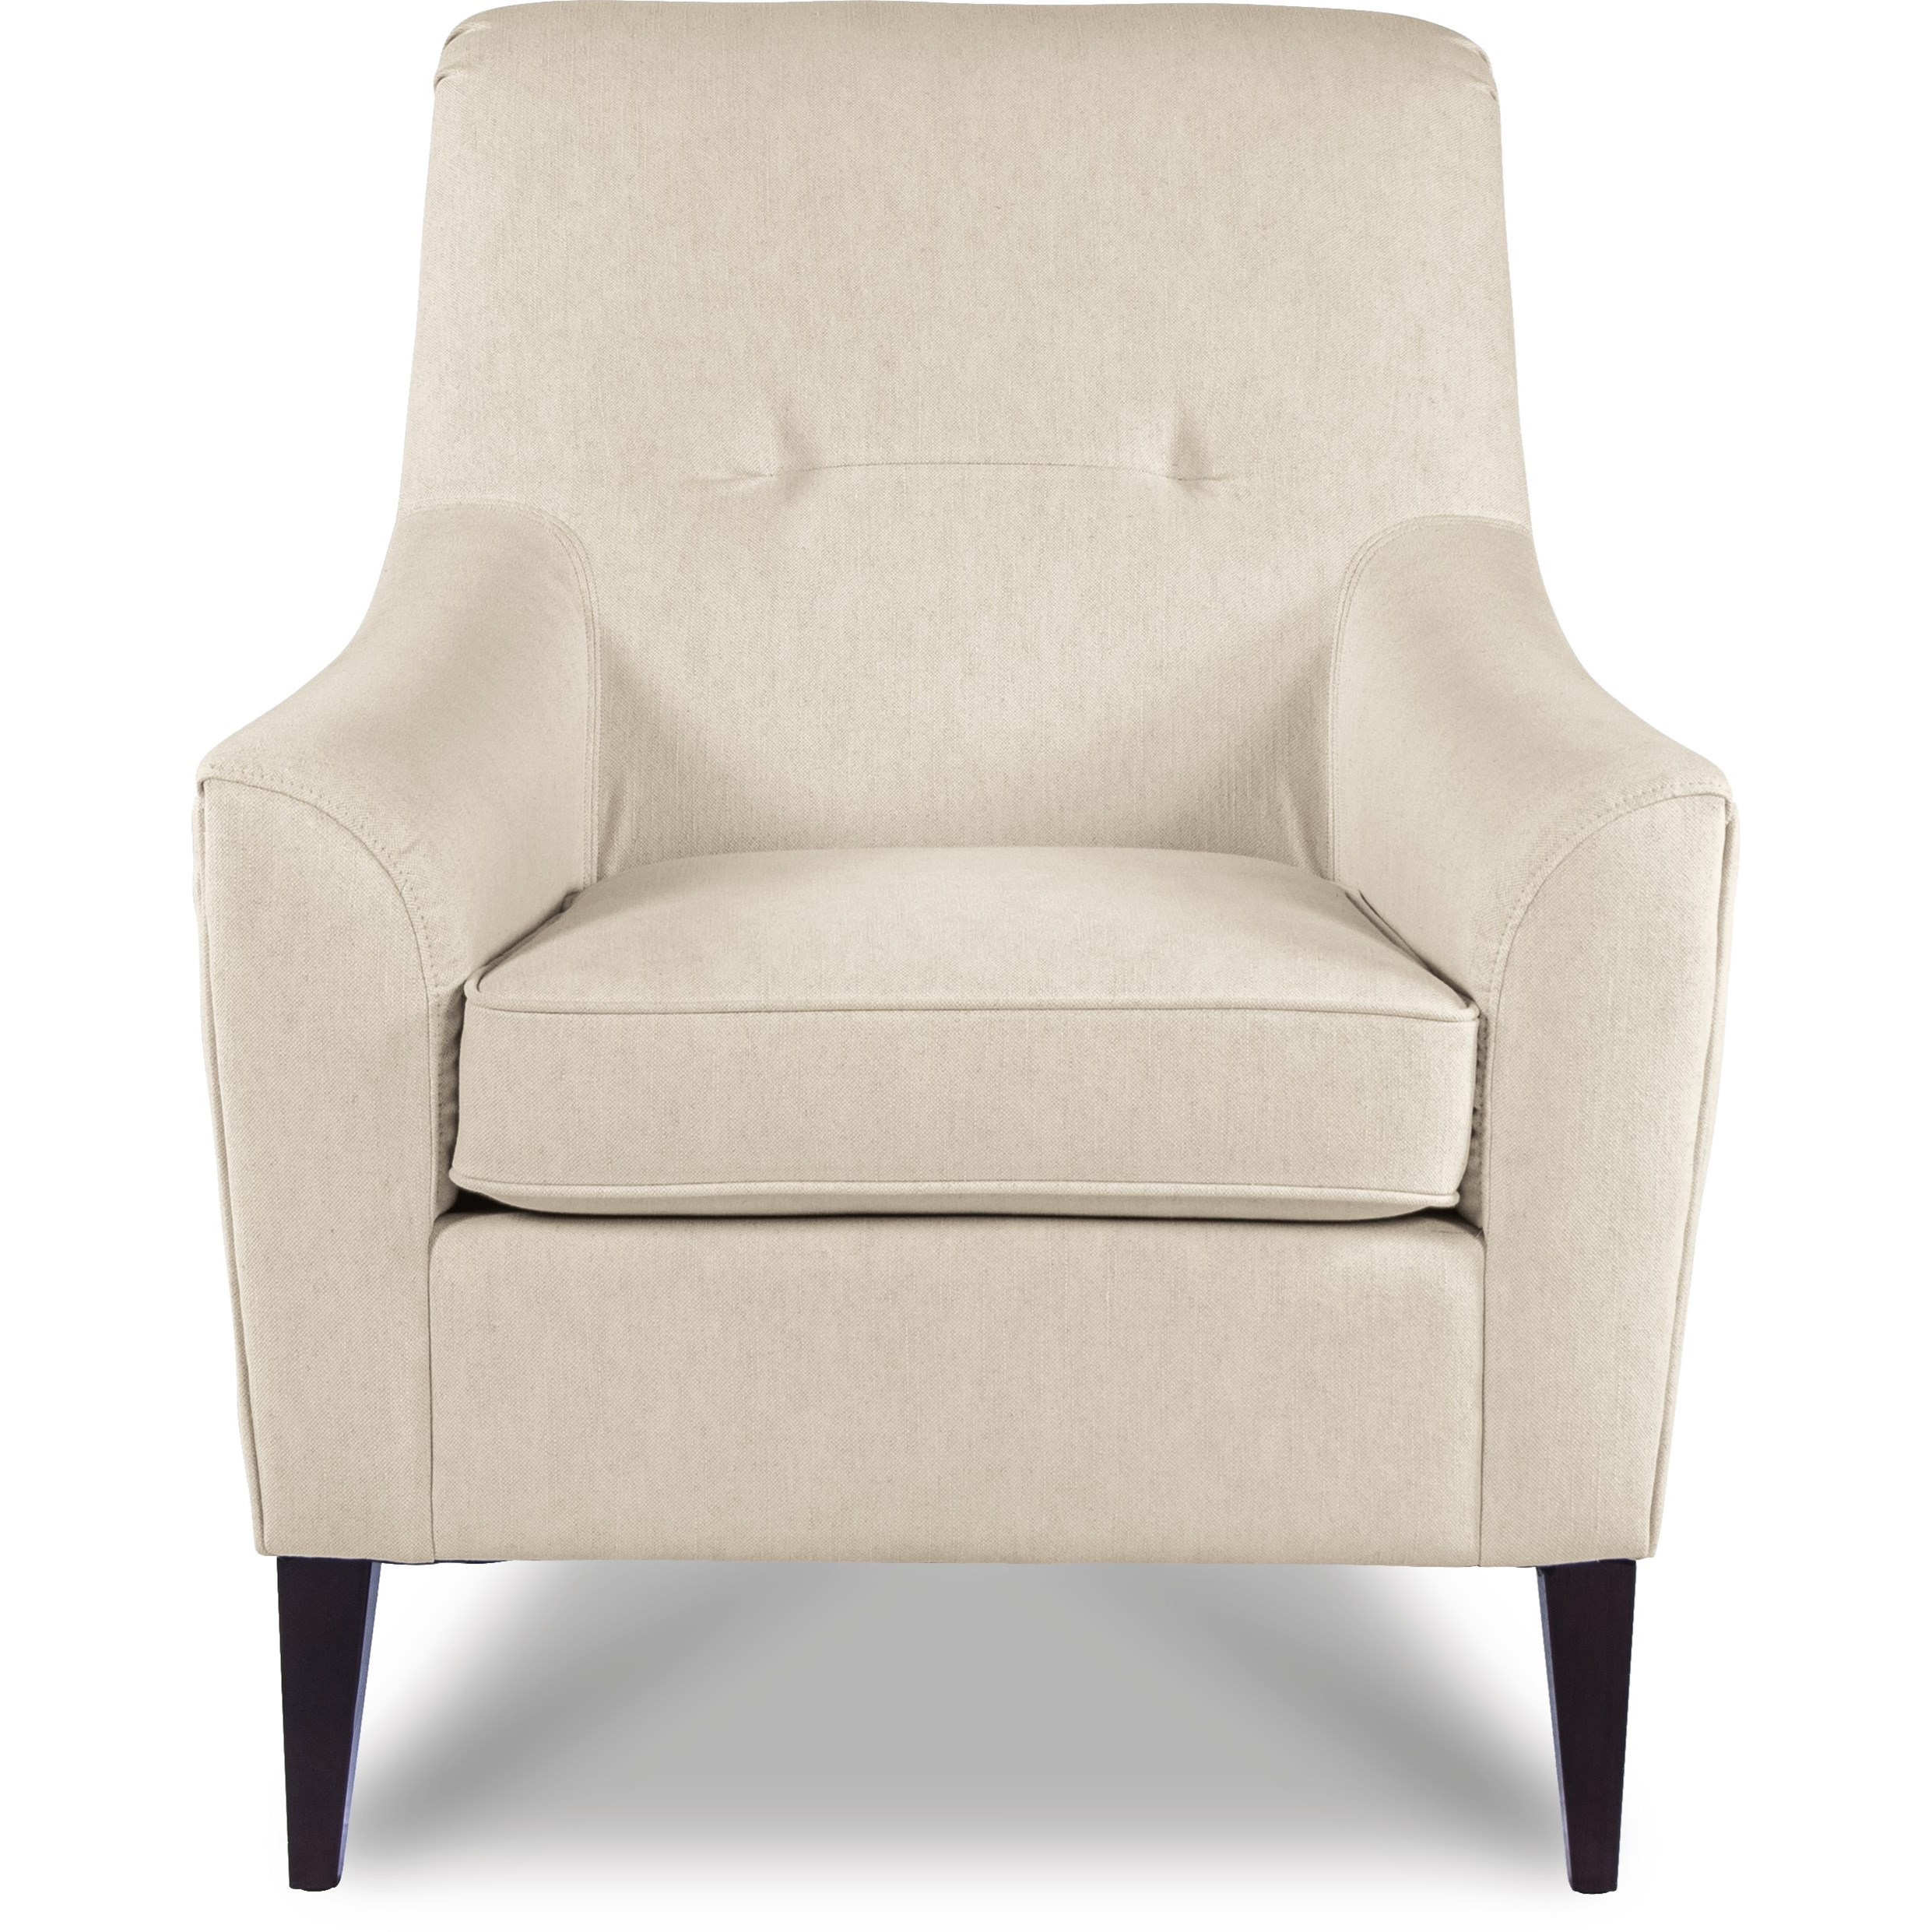 La Z Boy Accent Chair Price: La-Z-Boy Chairs Barista Accent Chair With Premier